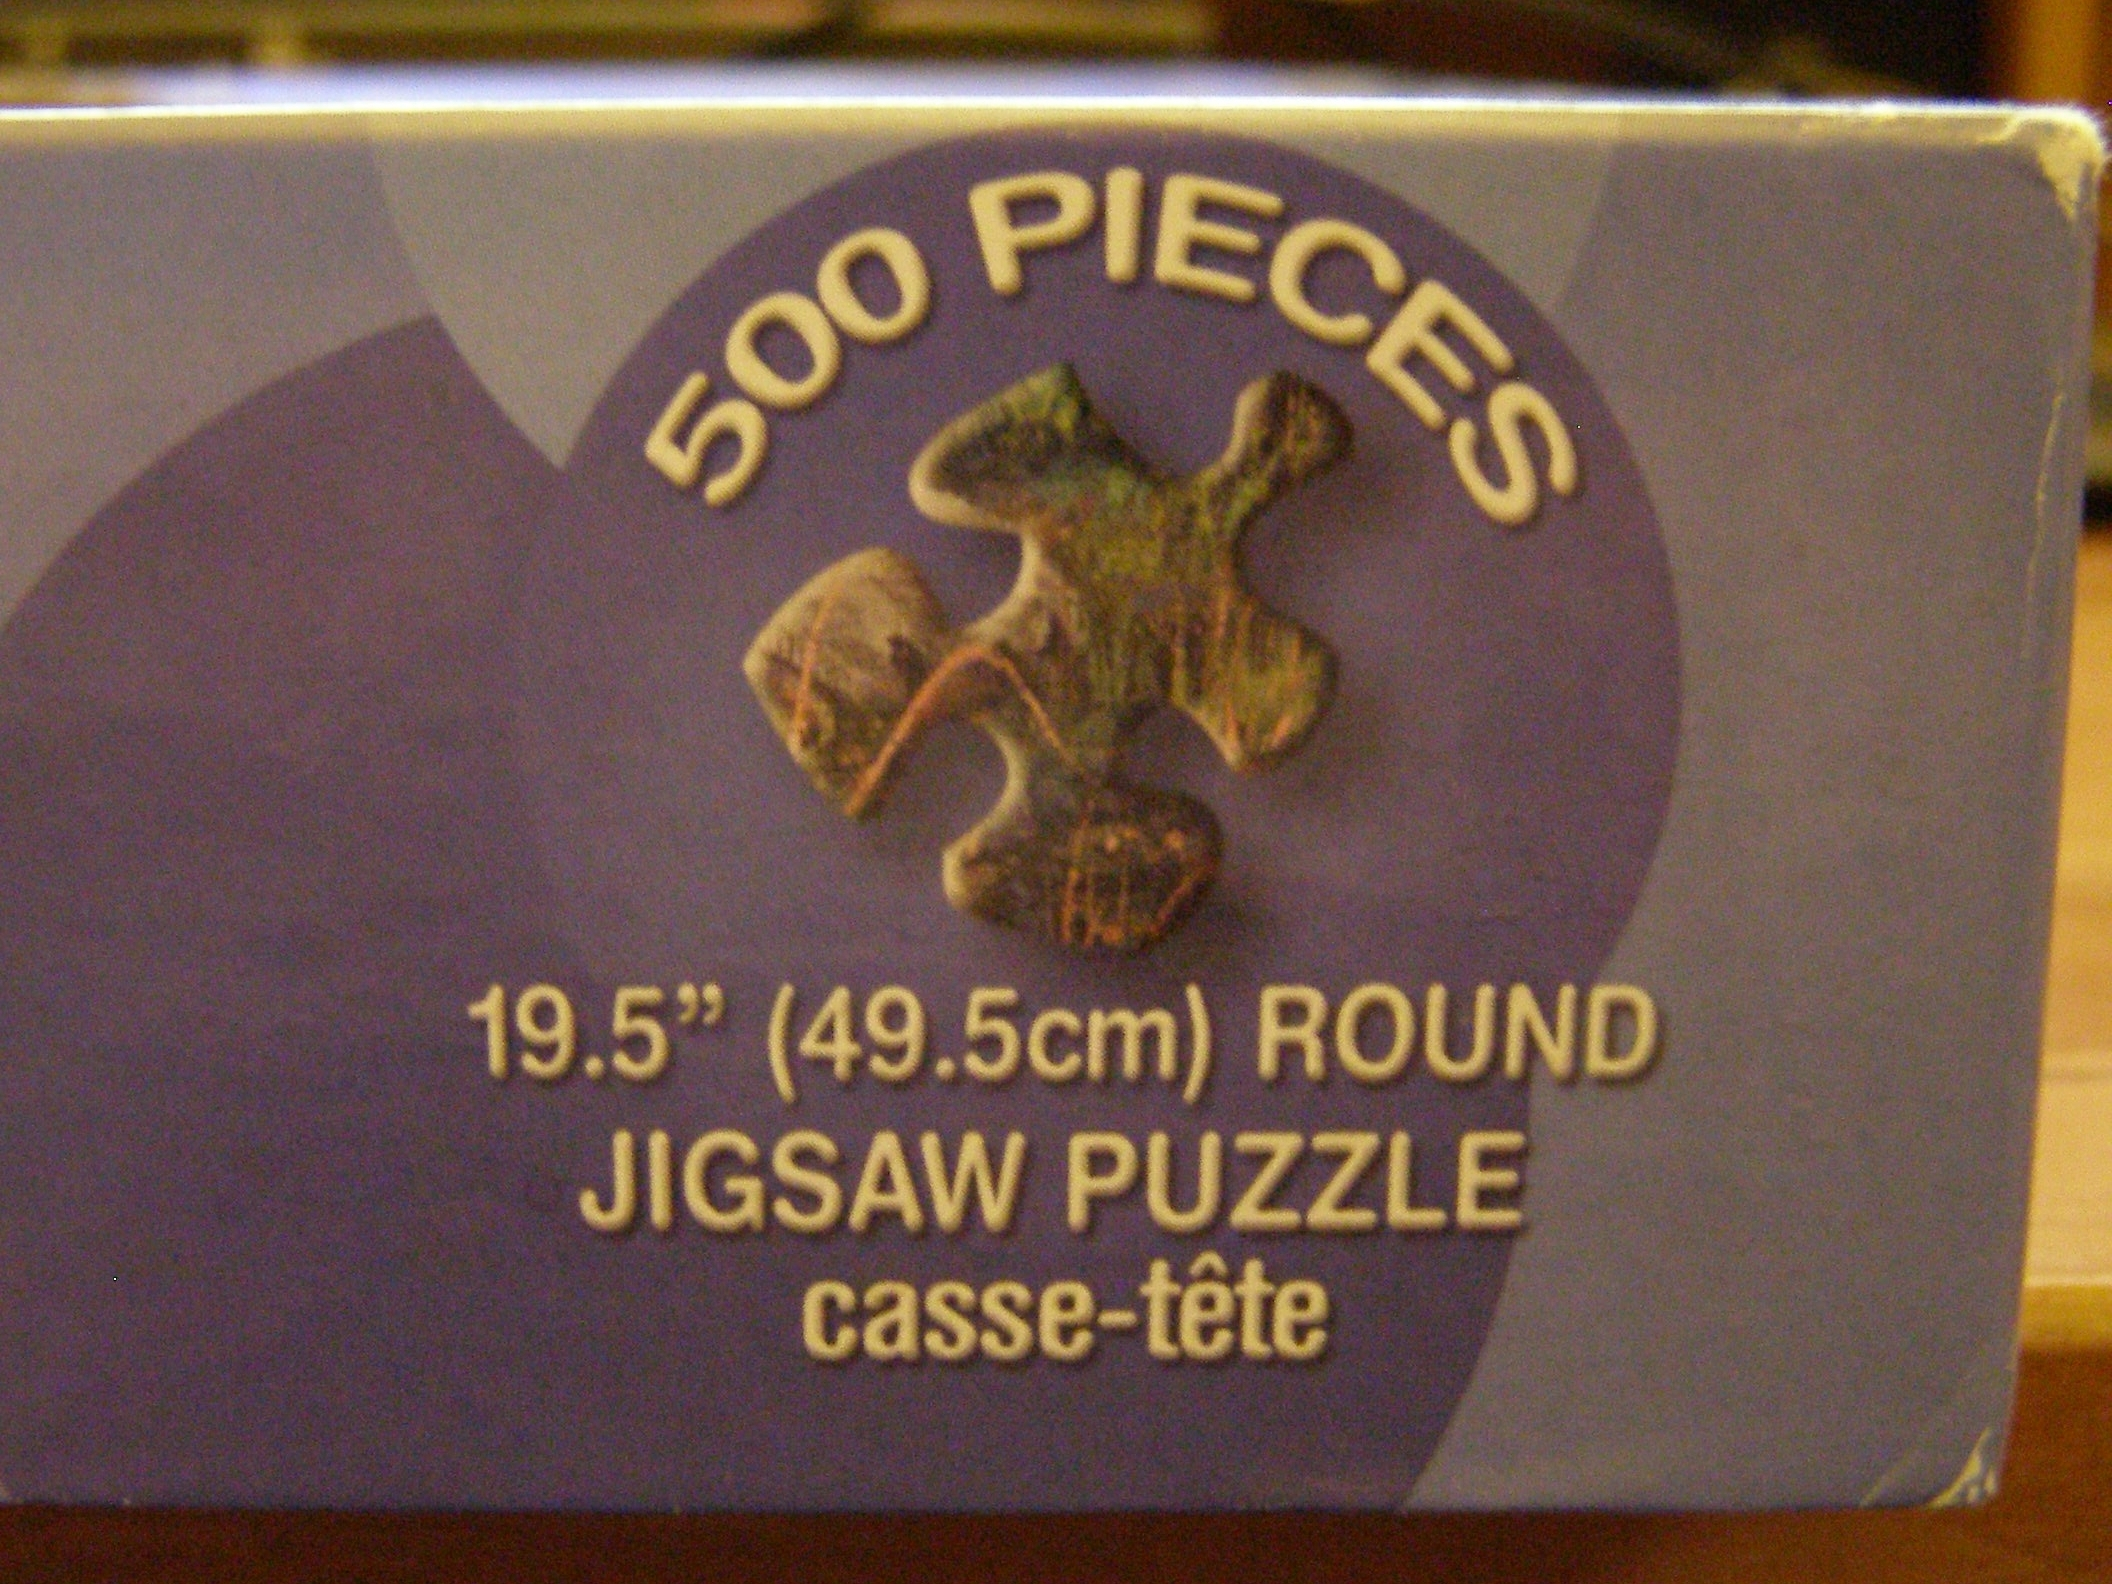 New Project: Fabricate Pieces to Complete a Defective JigsawPuzzle